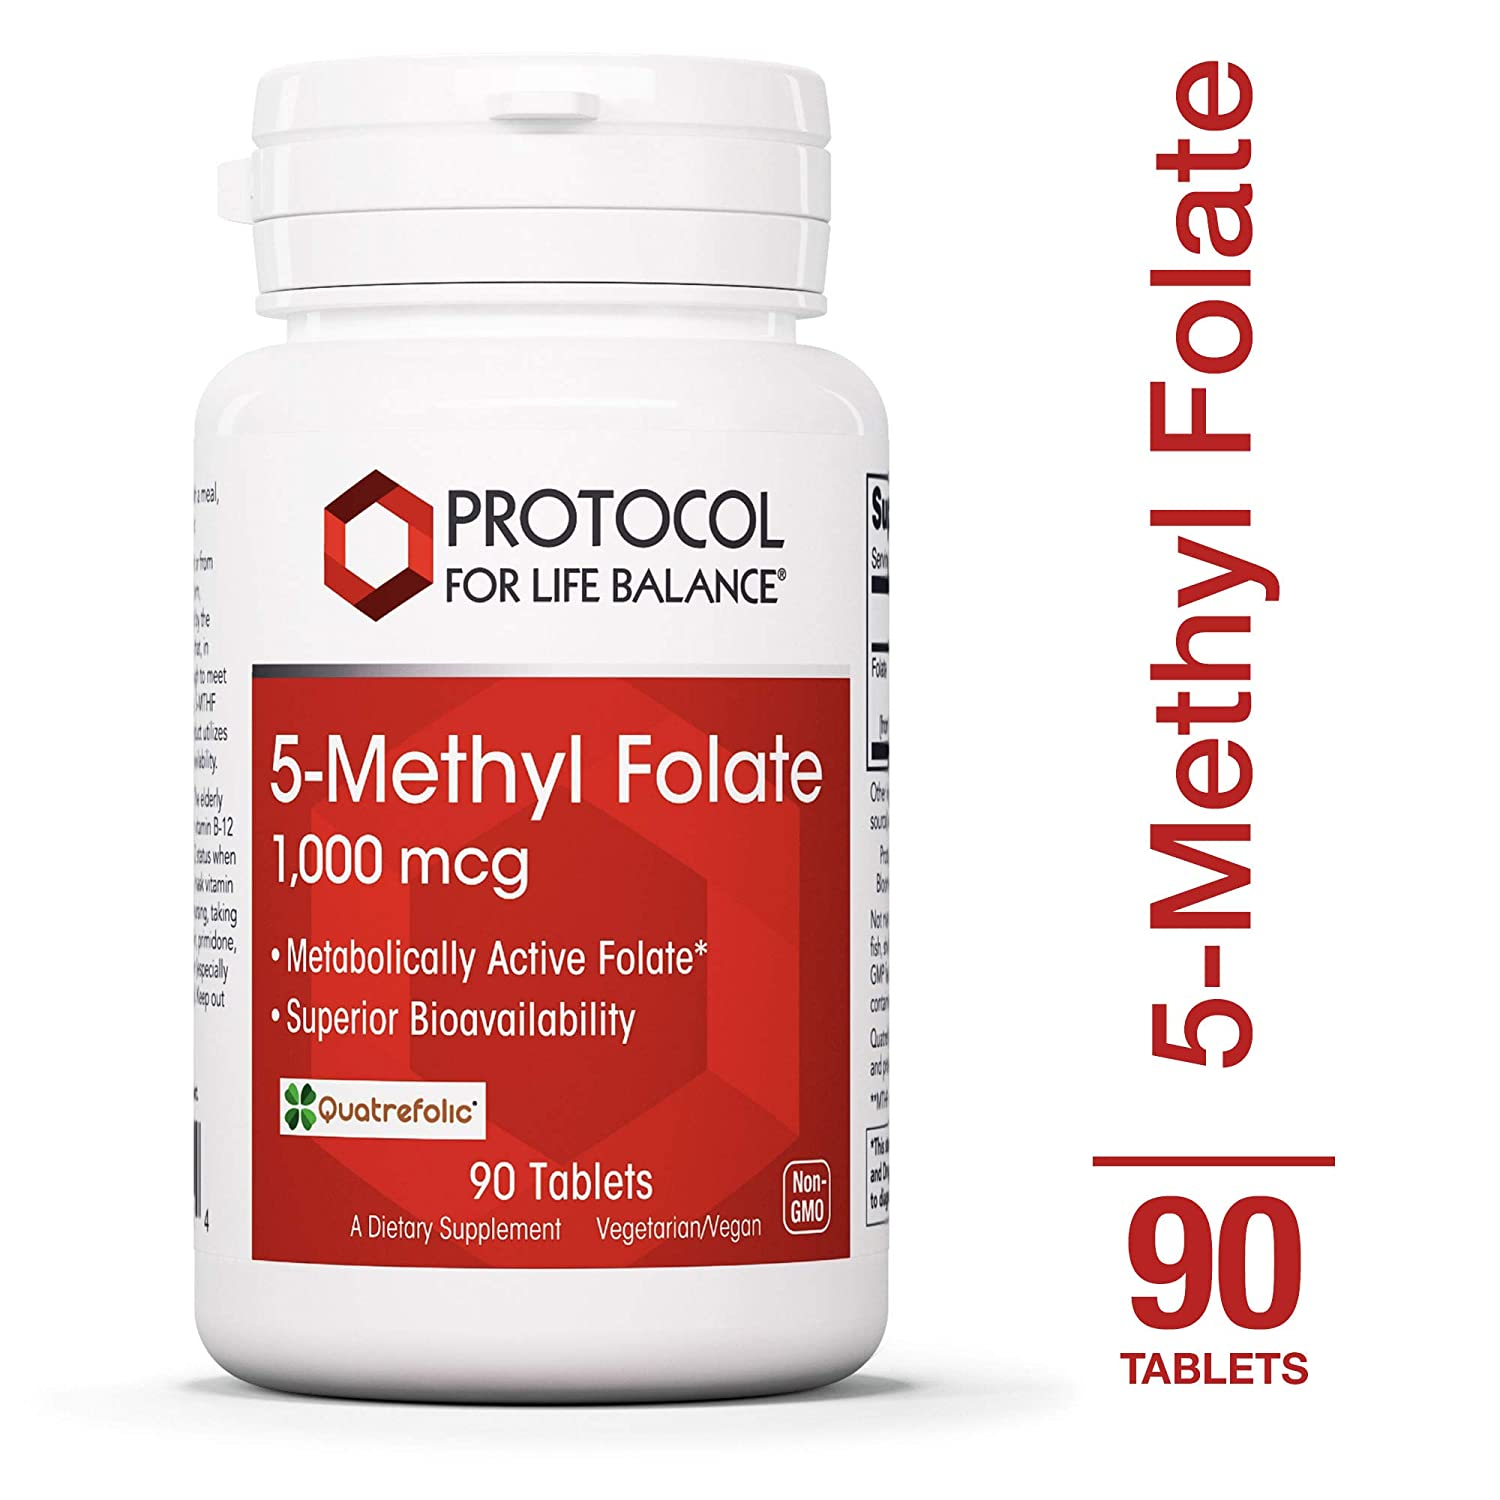 Protocol For Life Balance – 5-Methyl Folate 1,000 mcg – Metabolically Active Folic Acid 5-MTHF – Supports Brain, Heart, Nerve Health, Helps Improve Immune System, Healthy Pregnancy – 90 Tablets